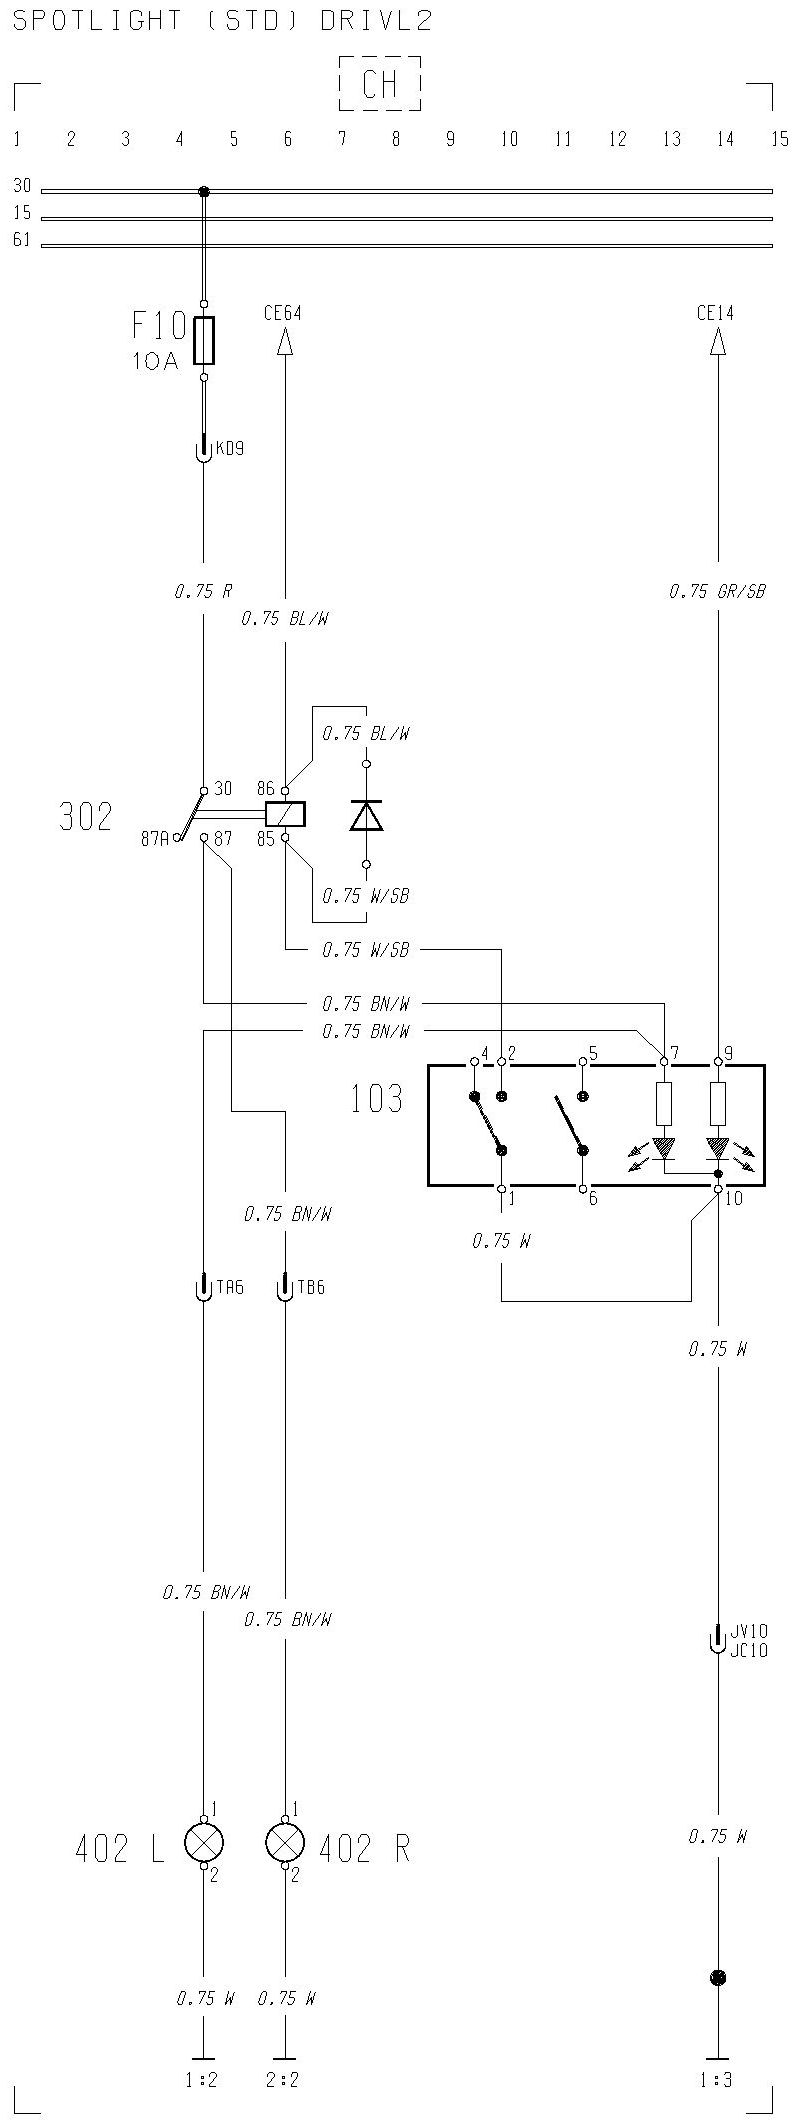 Spotlight Wiring Diagram For Hilux Library Guest Switches Wire Marine Schematic Diagrams